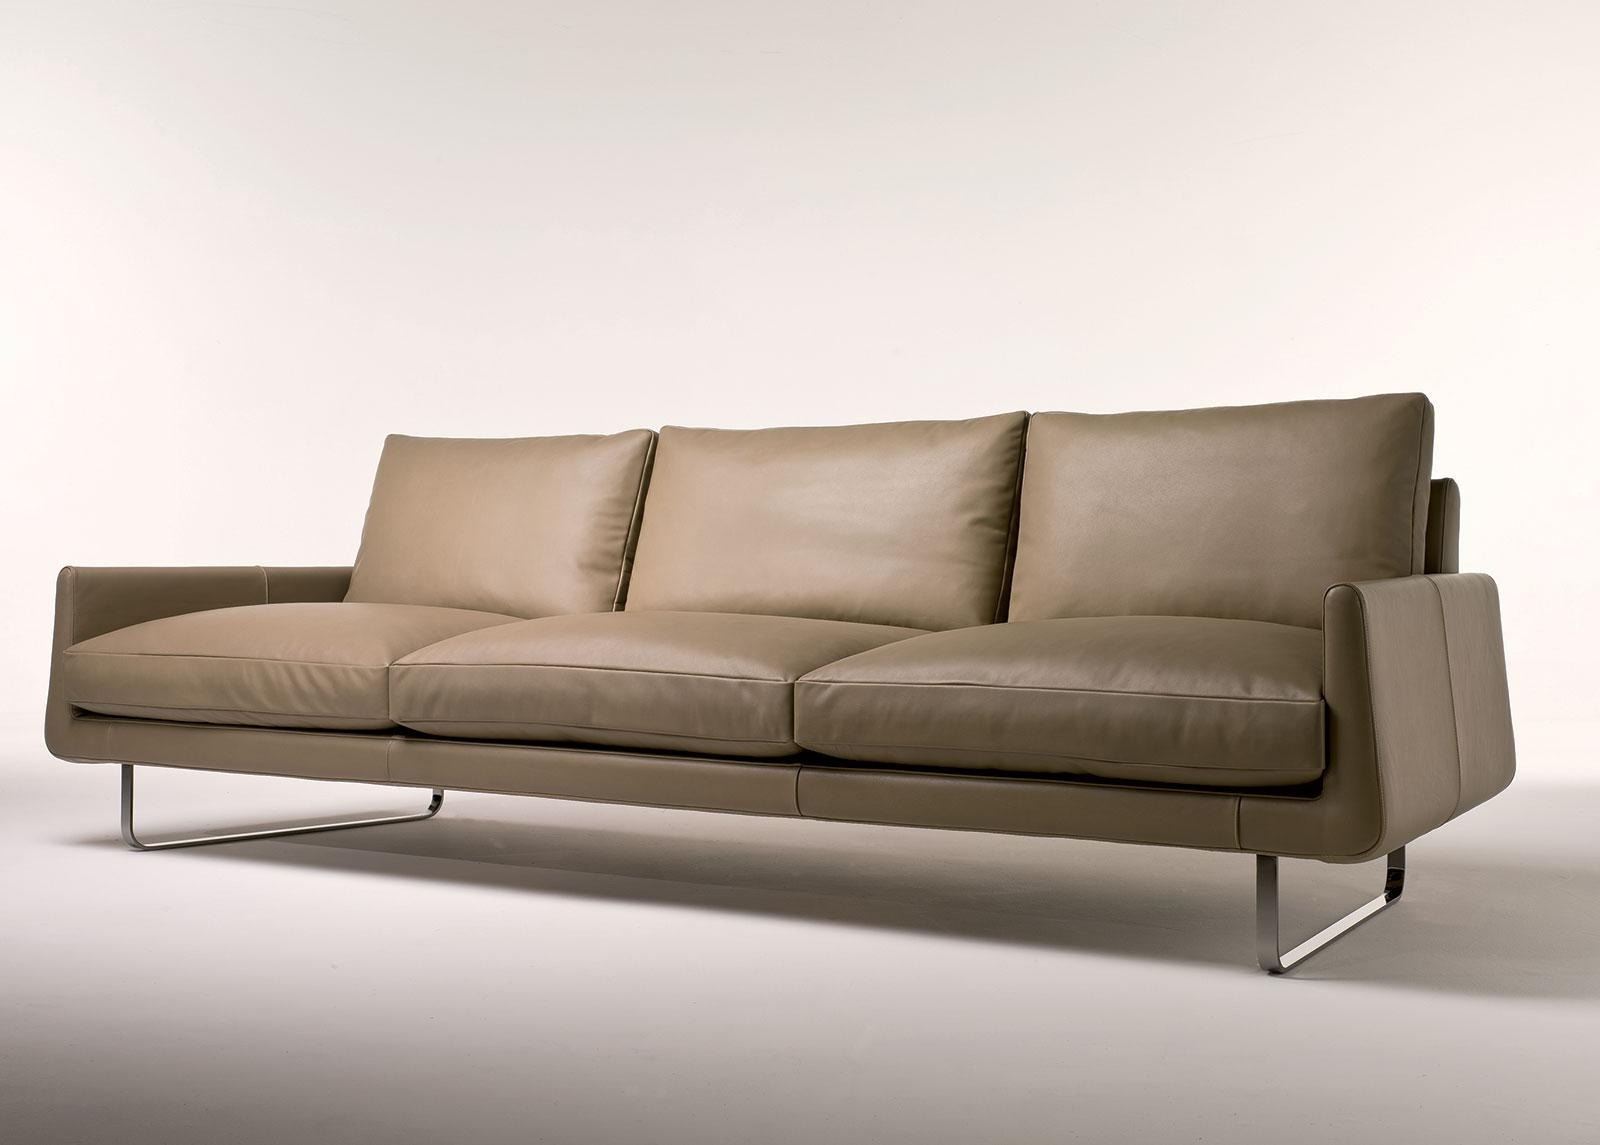 Shop Online – Italy Dream Design Inside 4 Seater Sofas (View 15 of 15)